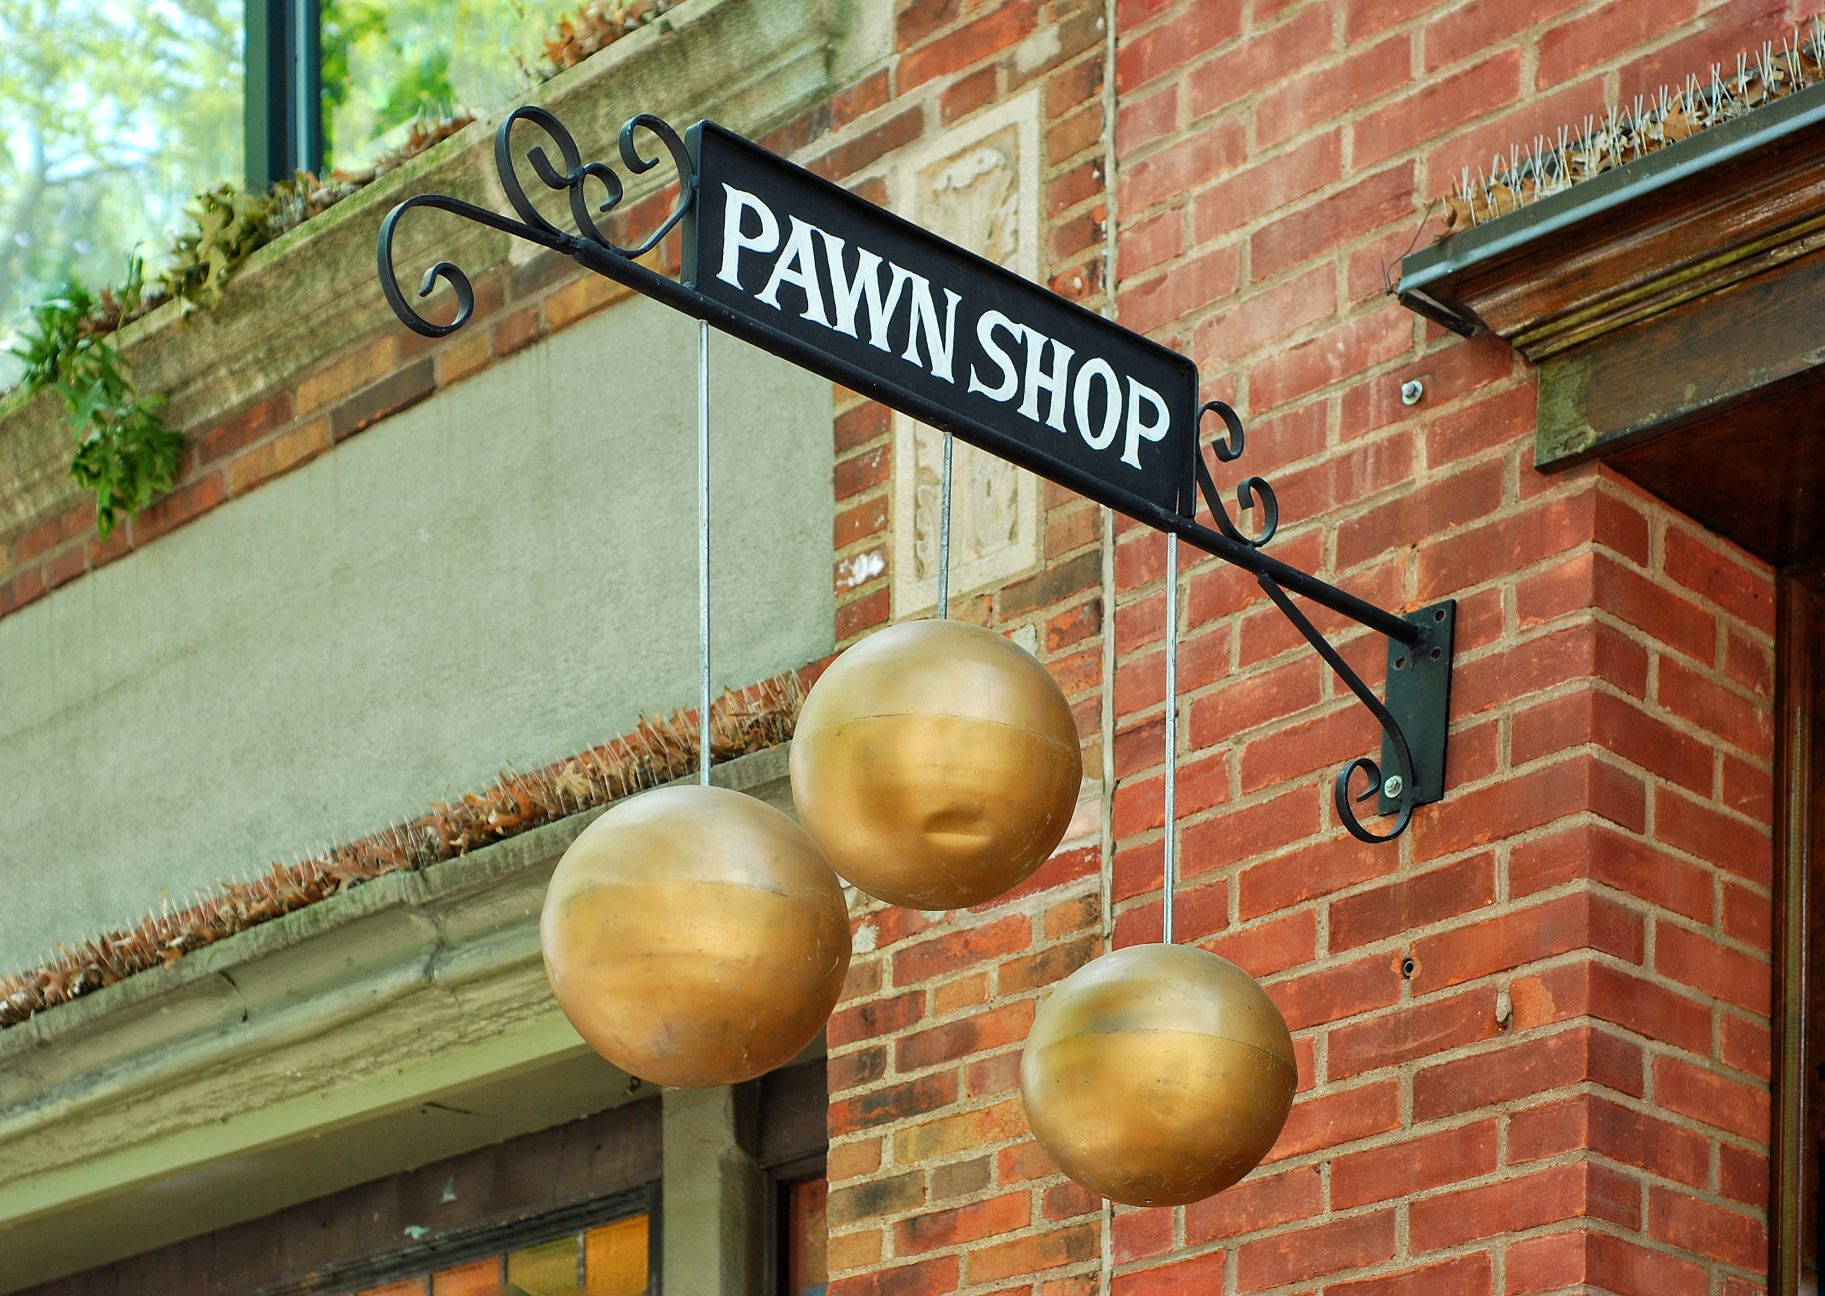 Finding the Best Pawn Shops Near Me Where to Go | SmartGuy